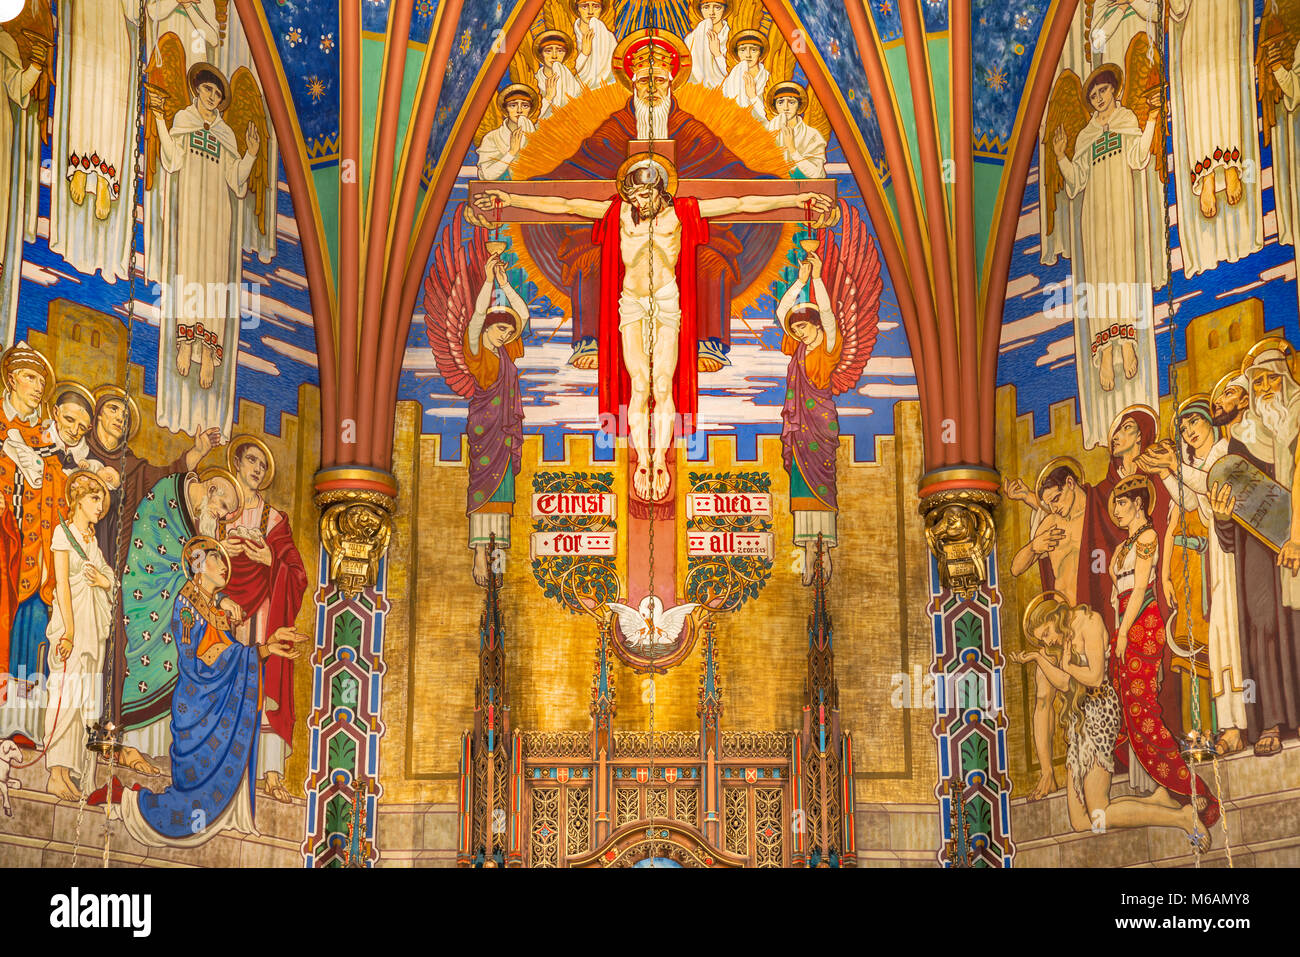 Murals in Sanctuary of Cathedral of the Madeleine, Salt Lake City, Utah, USA - Stock Image